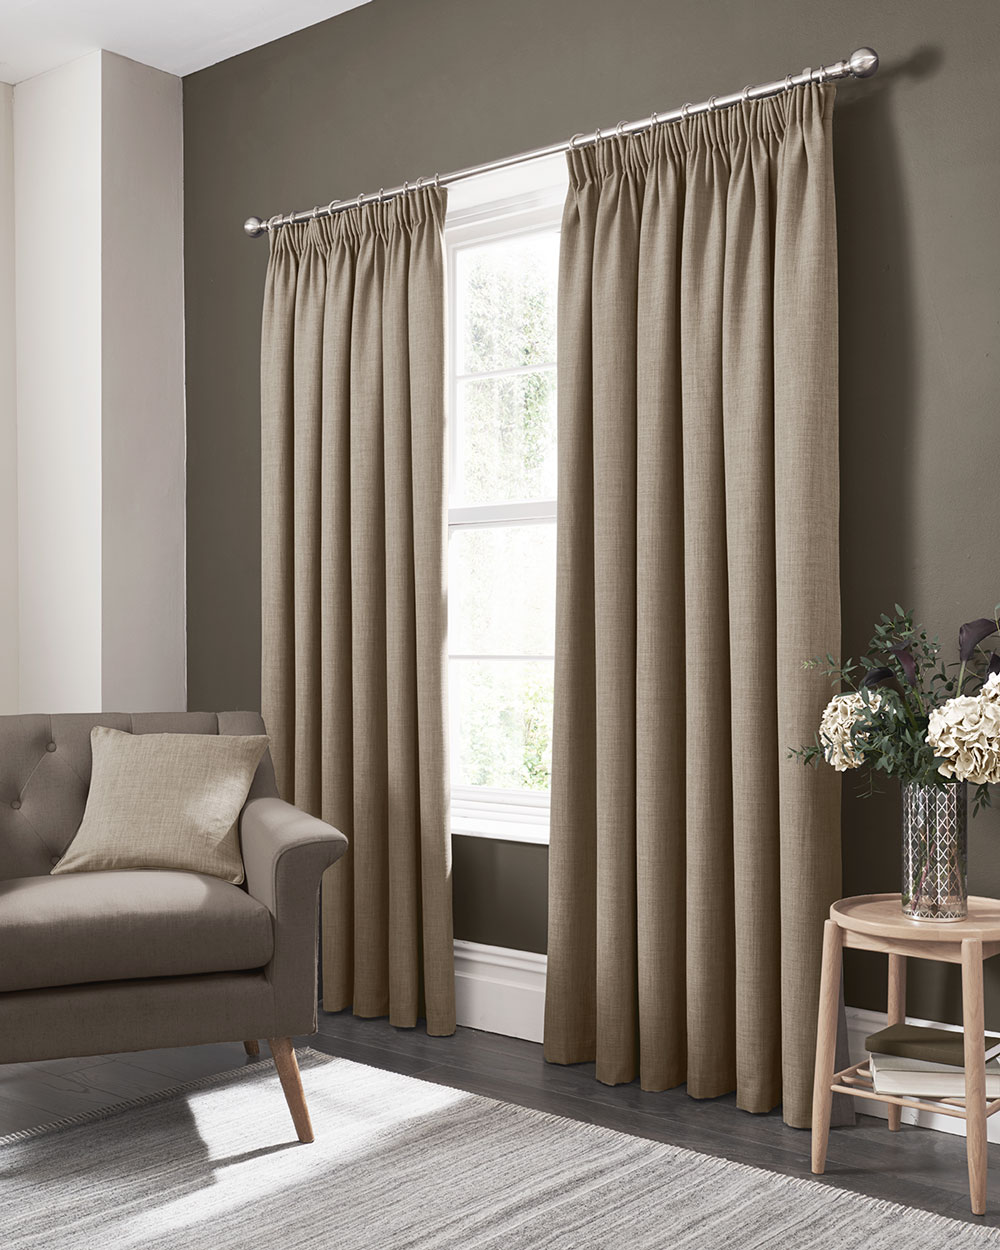 Studio G Elba Pencil Pleat Curtains  Linen Ready Made Curtains - Product code: M1105/03/90X5